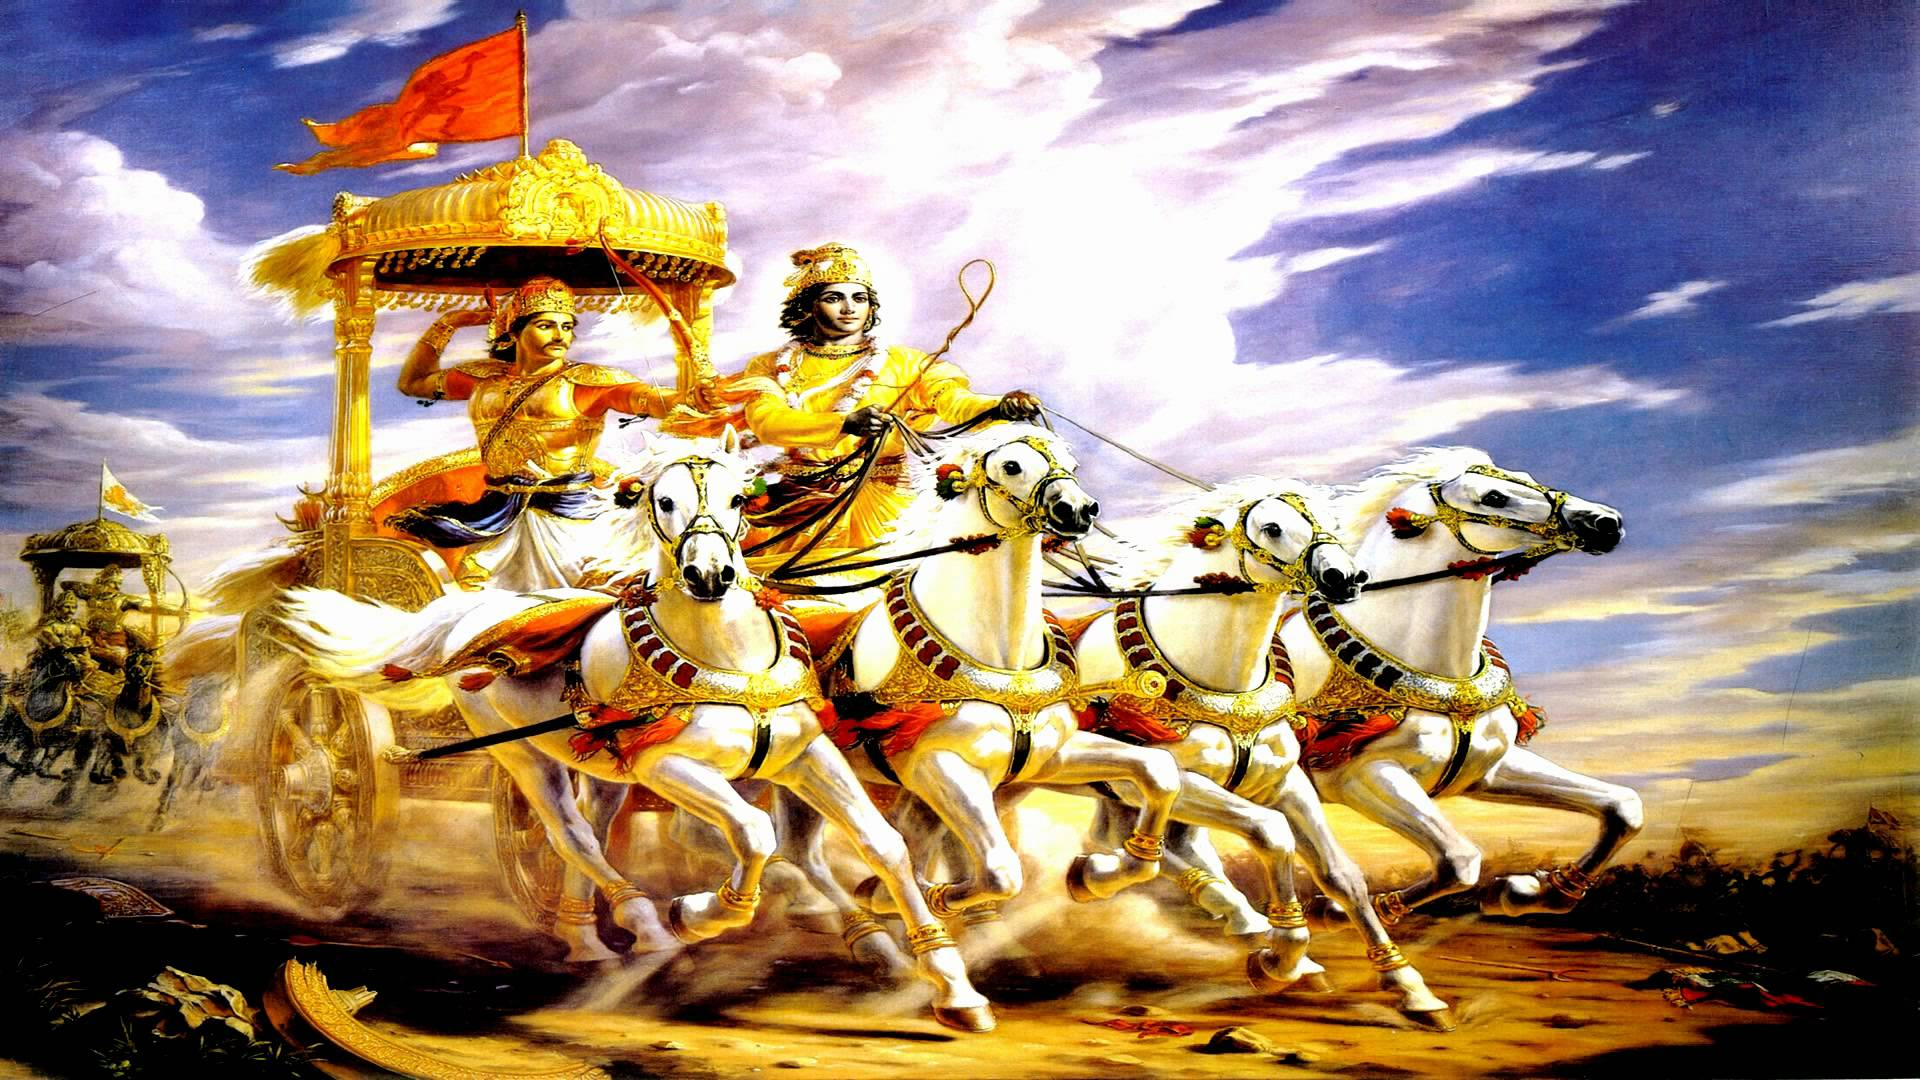 Telugu Quotes Wallpapers Bhagavad Gita Wallpapers Wallpaper Cave